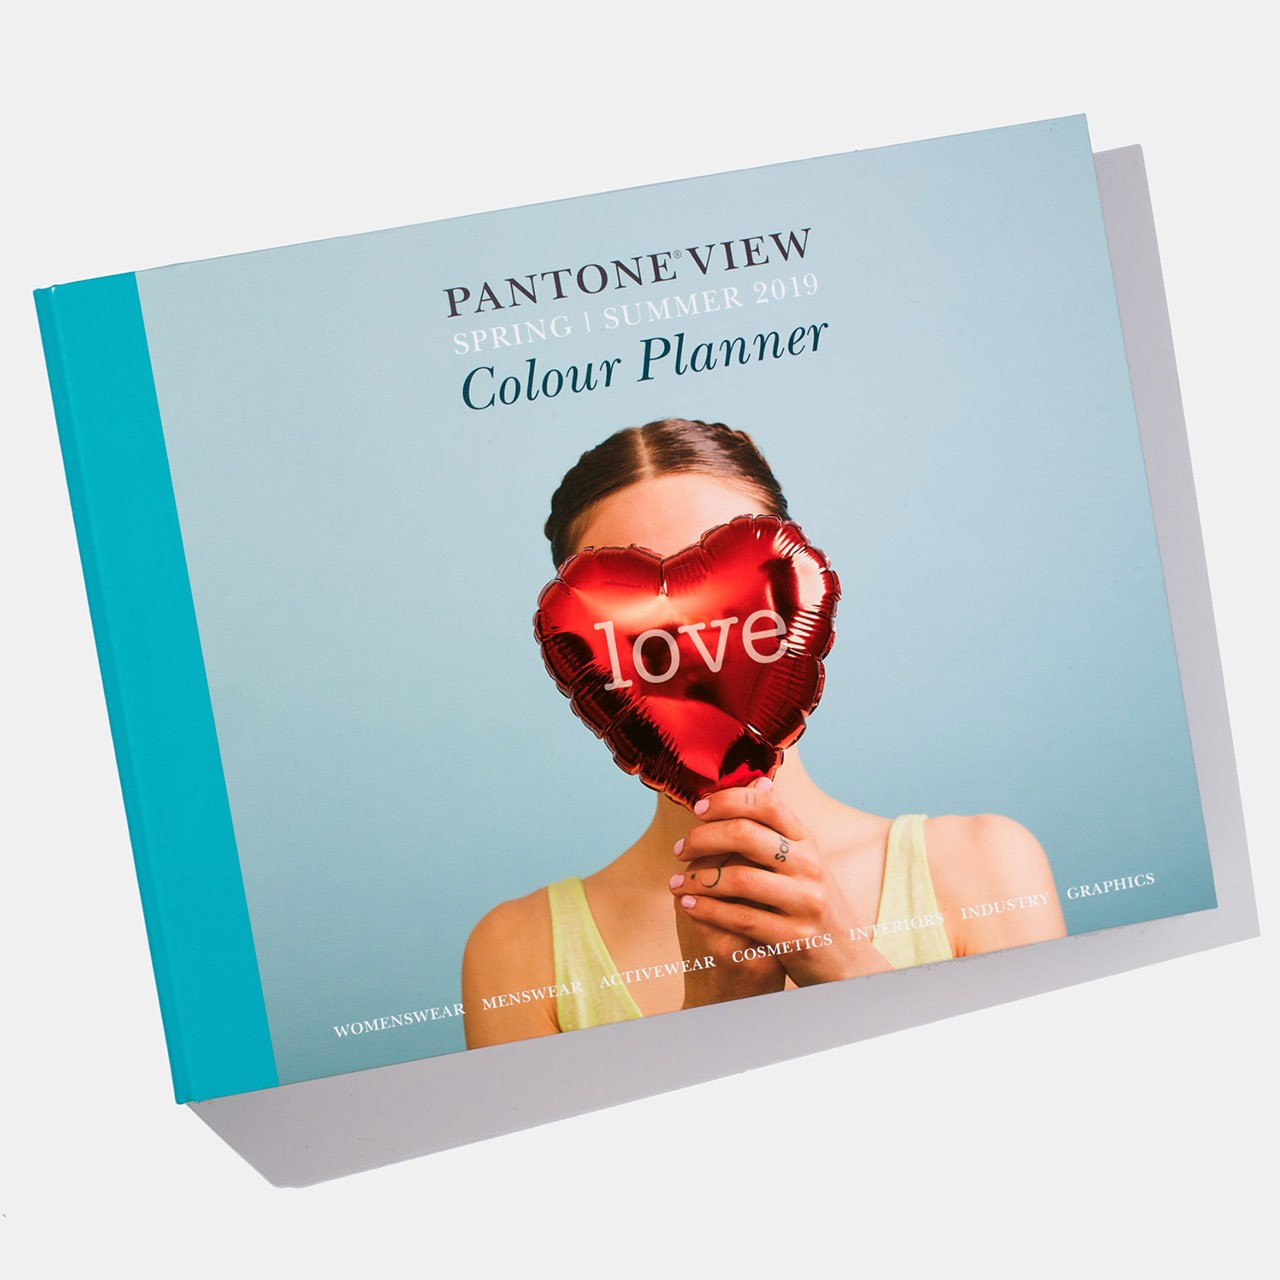 VCP-S19 - PANTONEVIEW Colour Primavera 2019